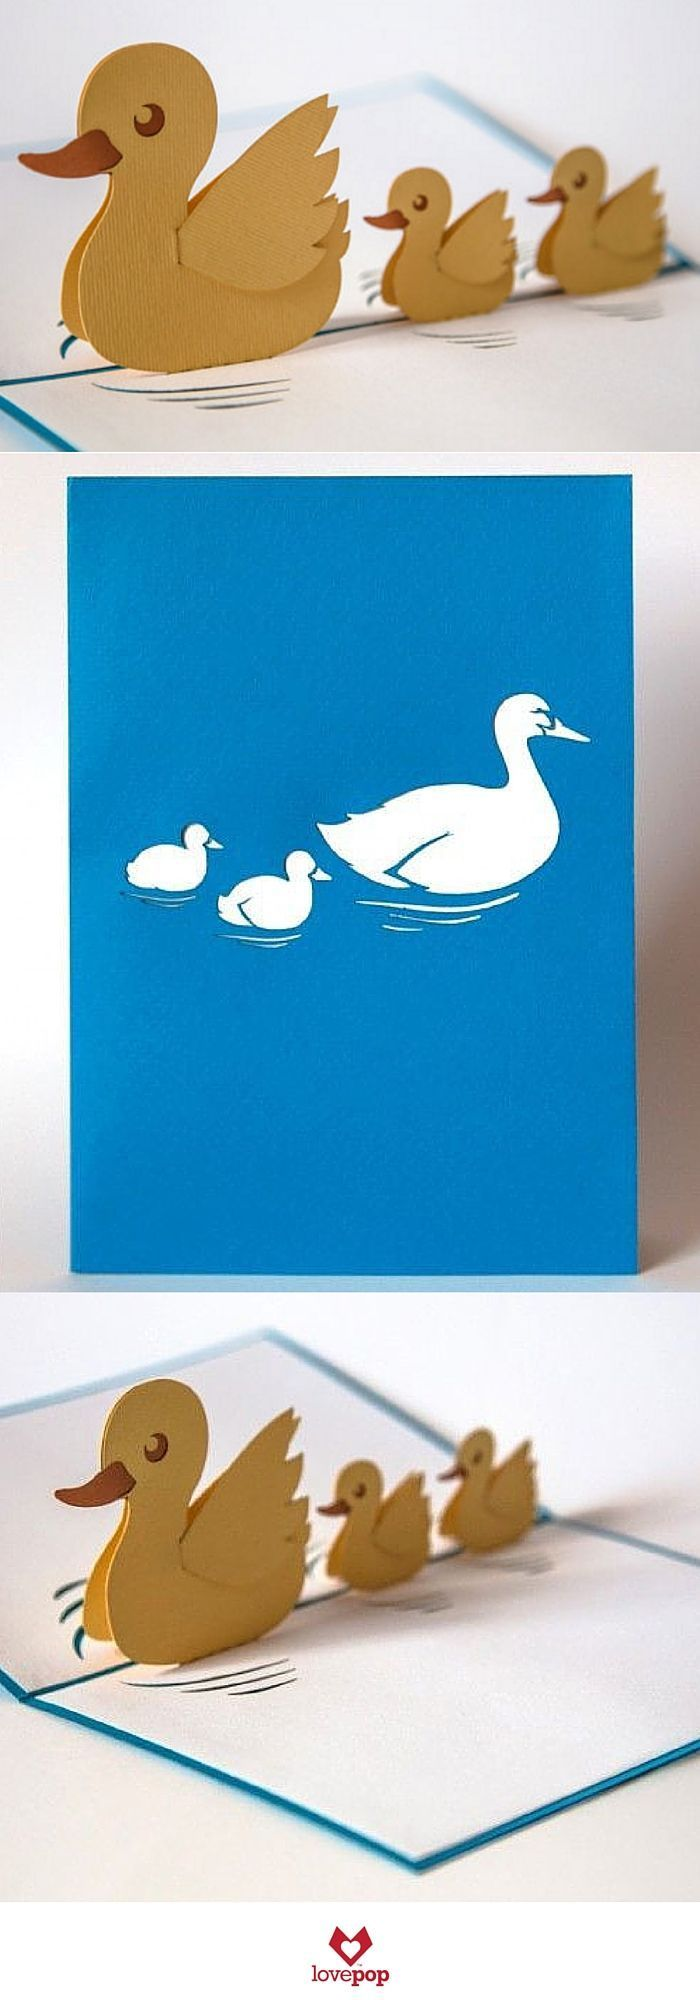 Adorable Ducks all in a row pop up out of this paper art card. Surprise all moms with this pop up card. #babyshower #HappyMothersDay